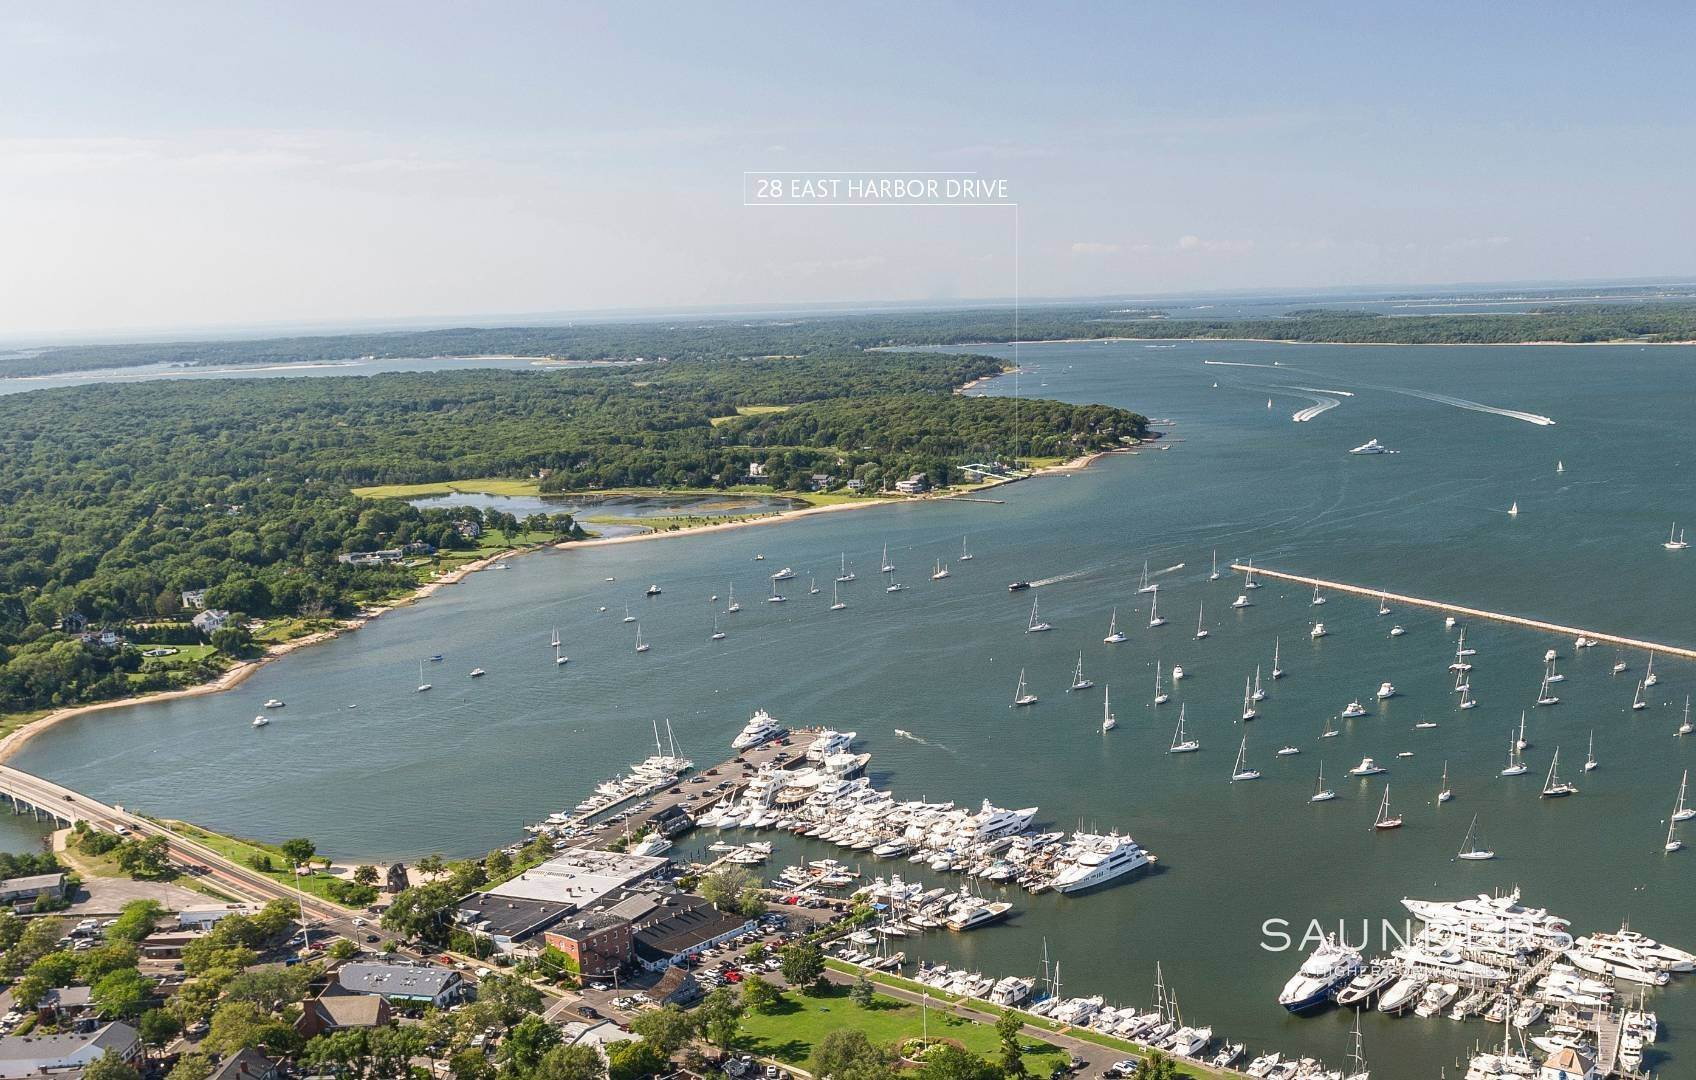 Single Family Homes for Sale at Waterfront Architectural Dream 28 East Harbor Drive, Sag Harbor, Southampton Town, NY 11963